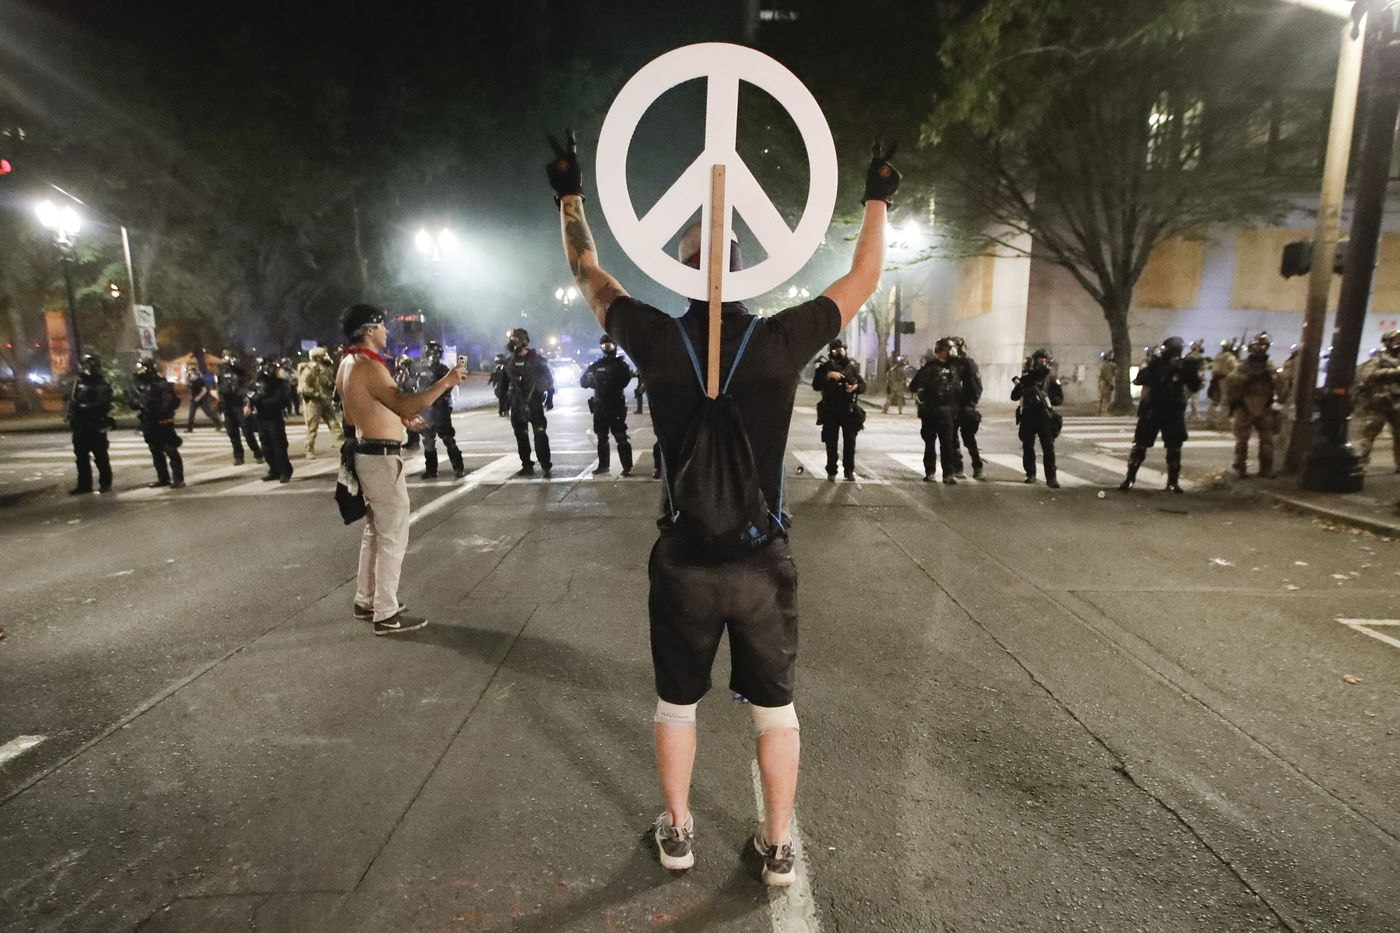 A demonstrator flashes a peace sign at federal officers during a Black Lives Matter protest at the Mark O. Hatfield United States Courthouse Wednesday, July 29, 2020, in Portland, Ore. (AP Photo/Marcio Jose Sanchez)